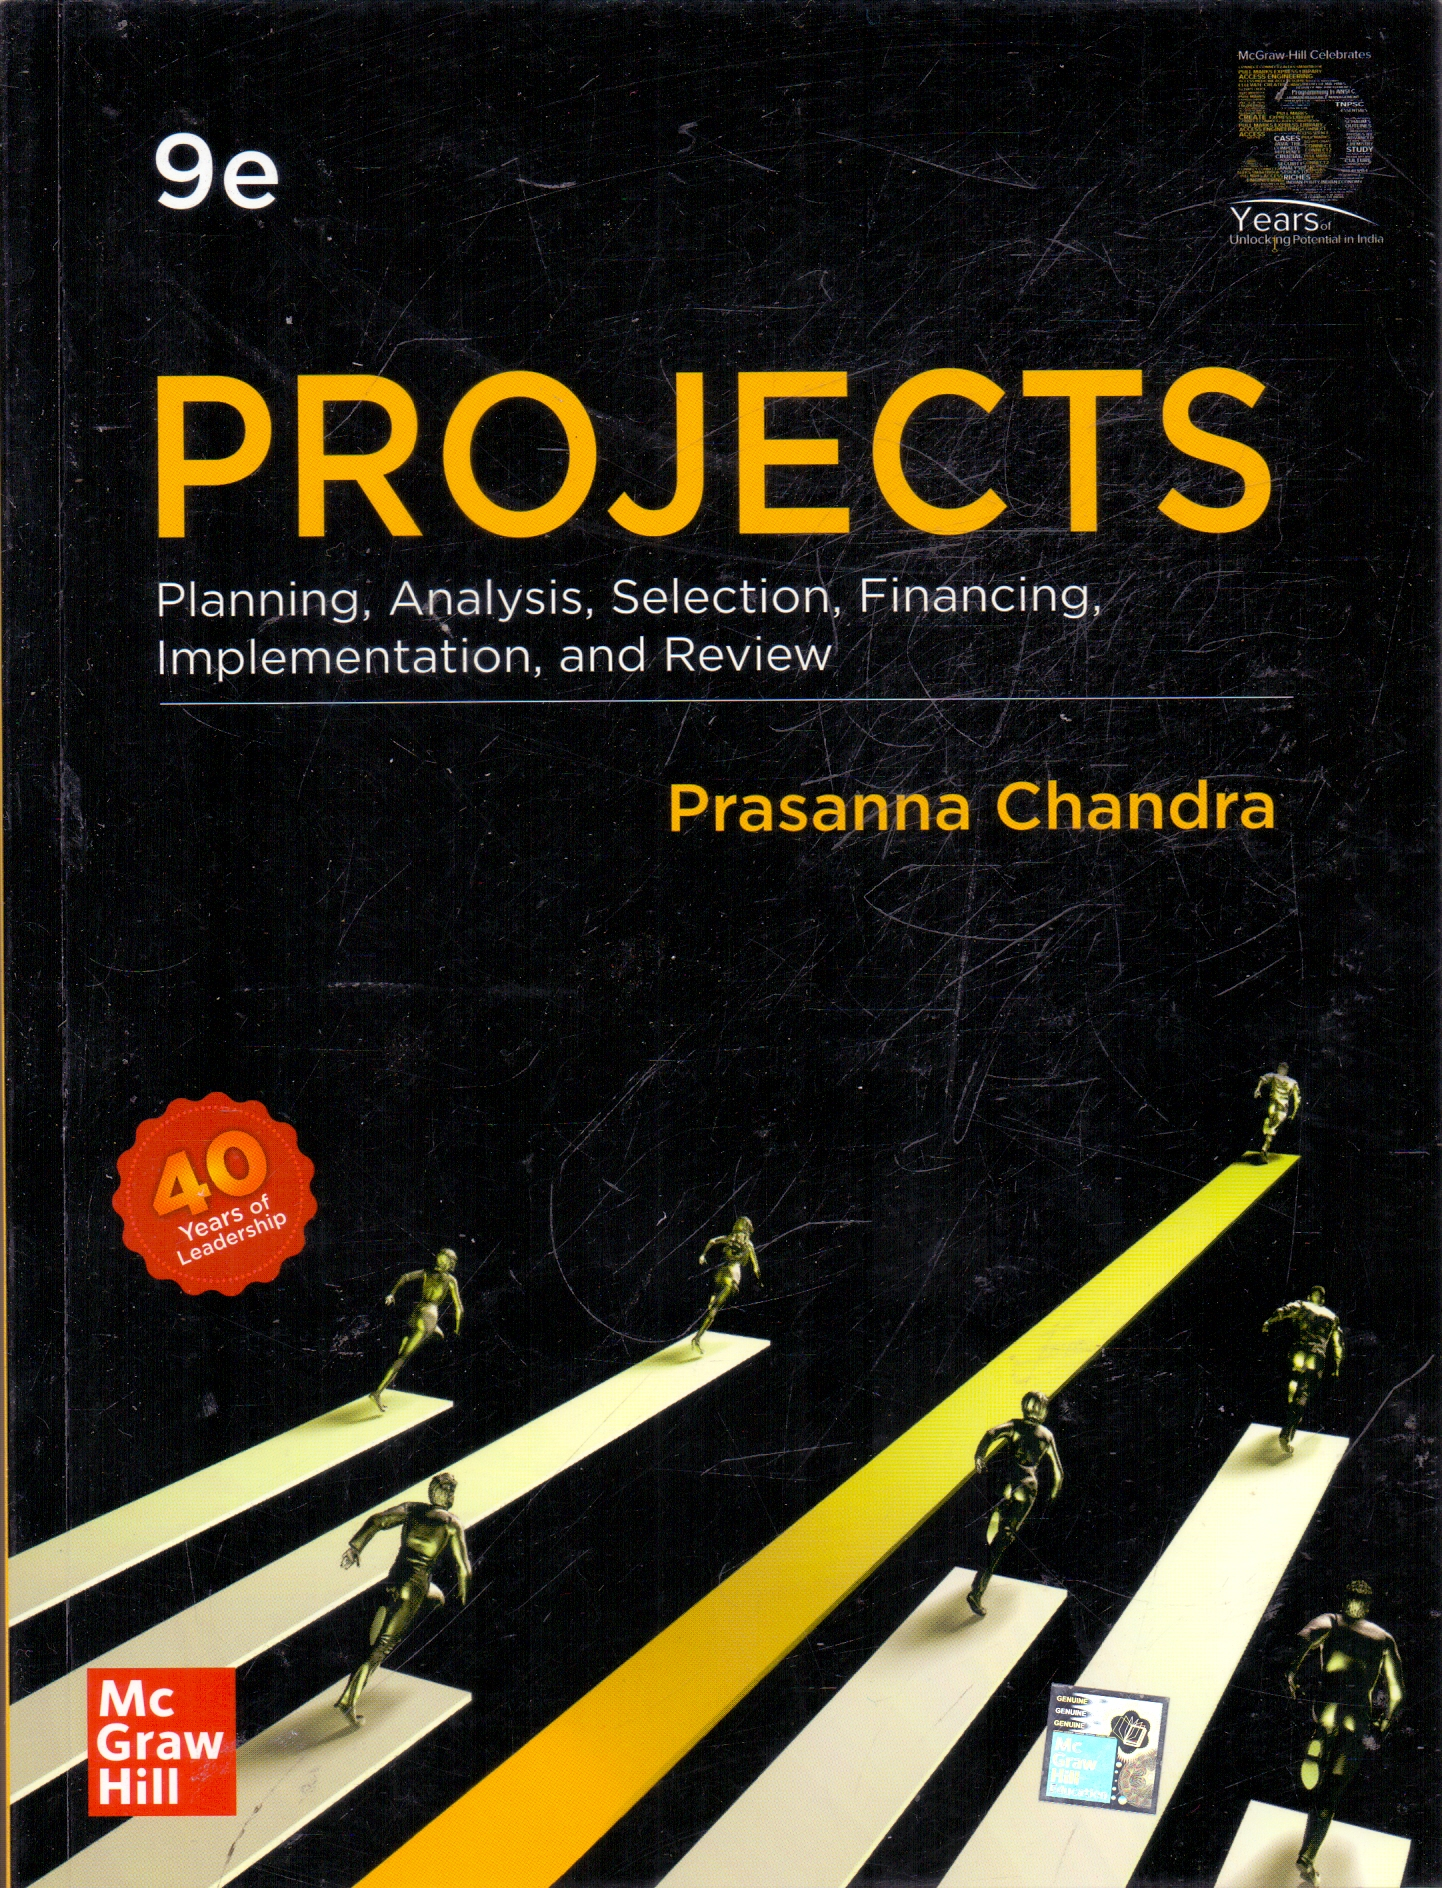 Projects Planning Analysis Selection Financing Implementation and Review